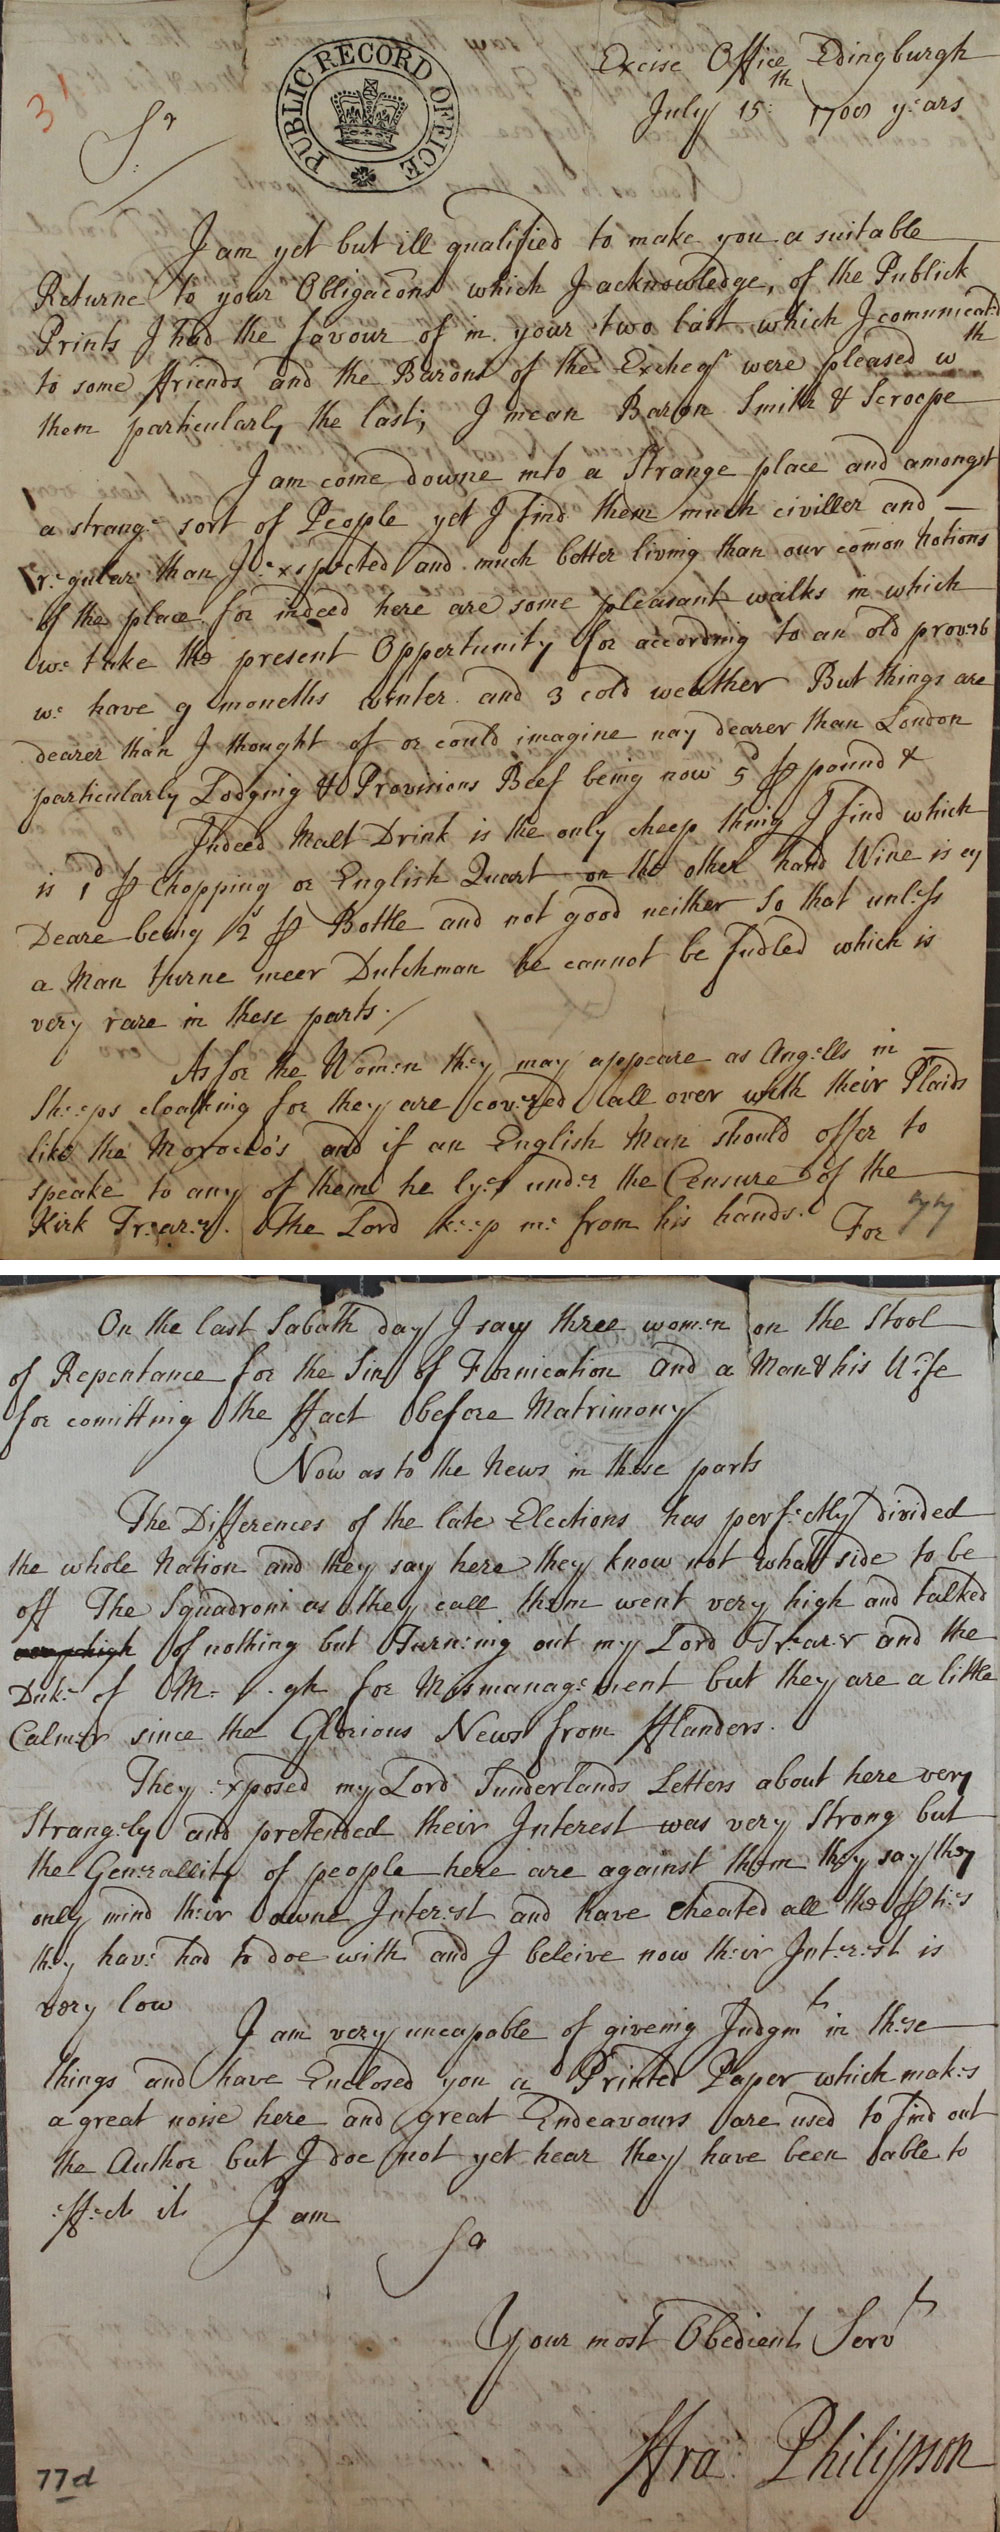 Letter from Deputy Francis Philipson to Tilson, Auditor of the Revenues and Duties of Excise and New Imposts within Scotland and the Islands territories, July 15th 1708 (SP 54/3/31)